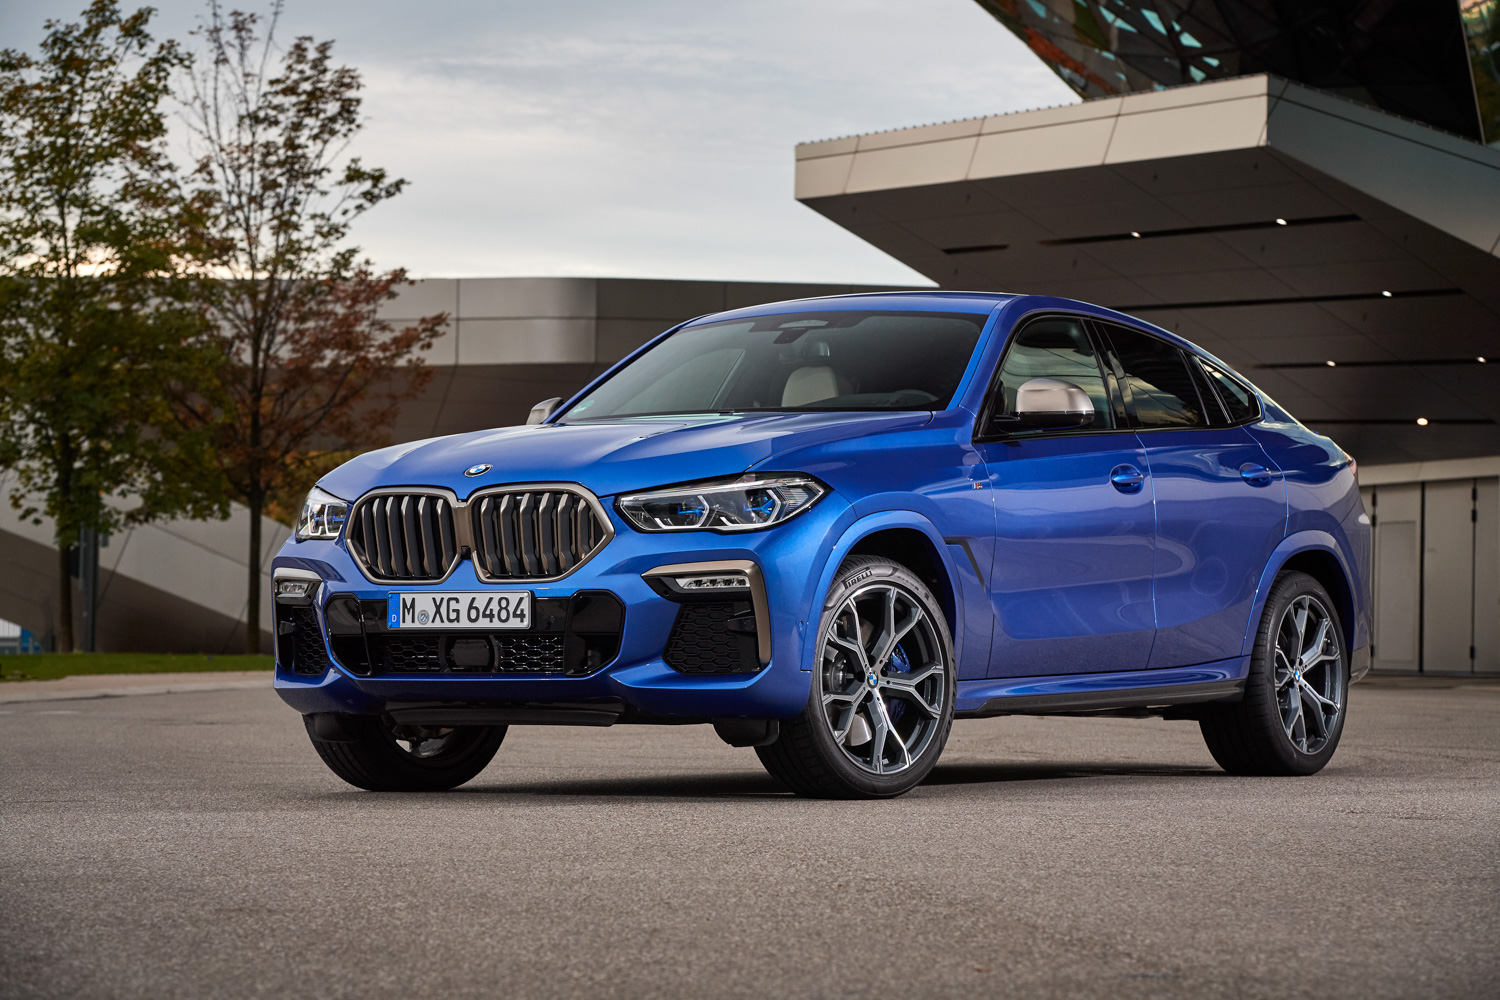 Car News | BMW X5/X6 xDrive40d MHEV revealed | CompleteCar.ie